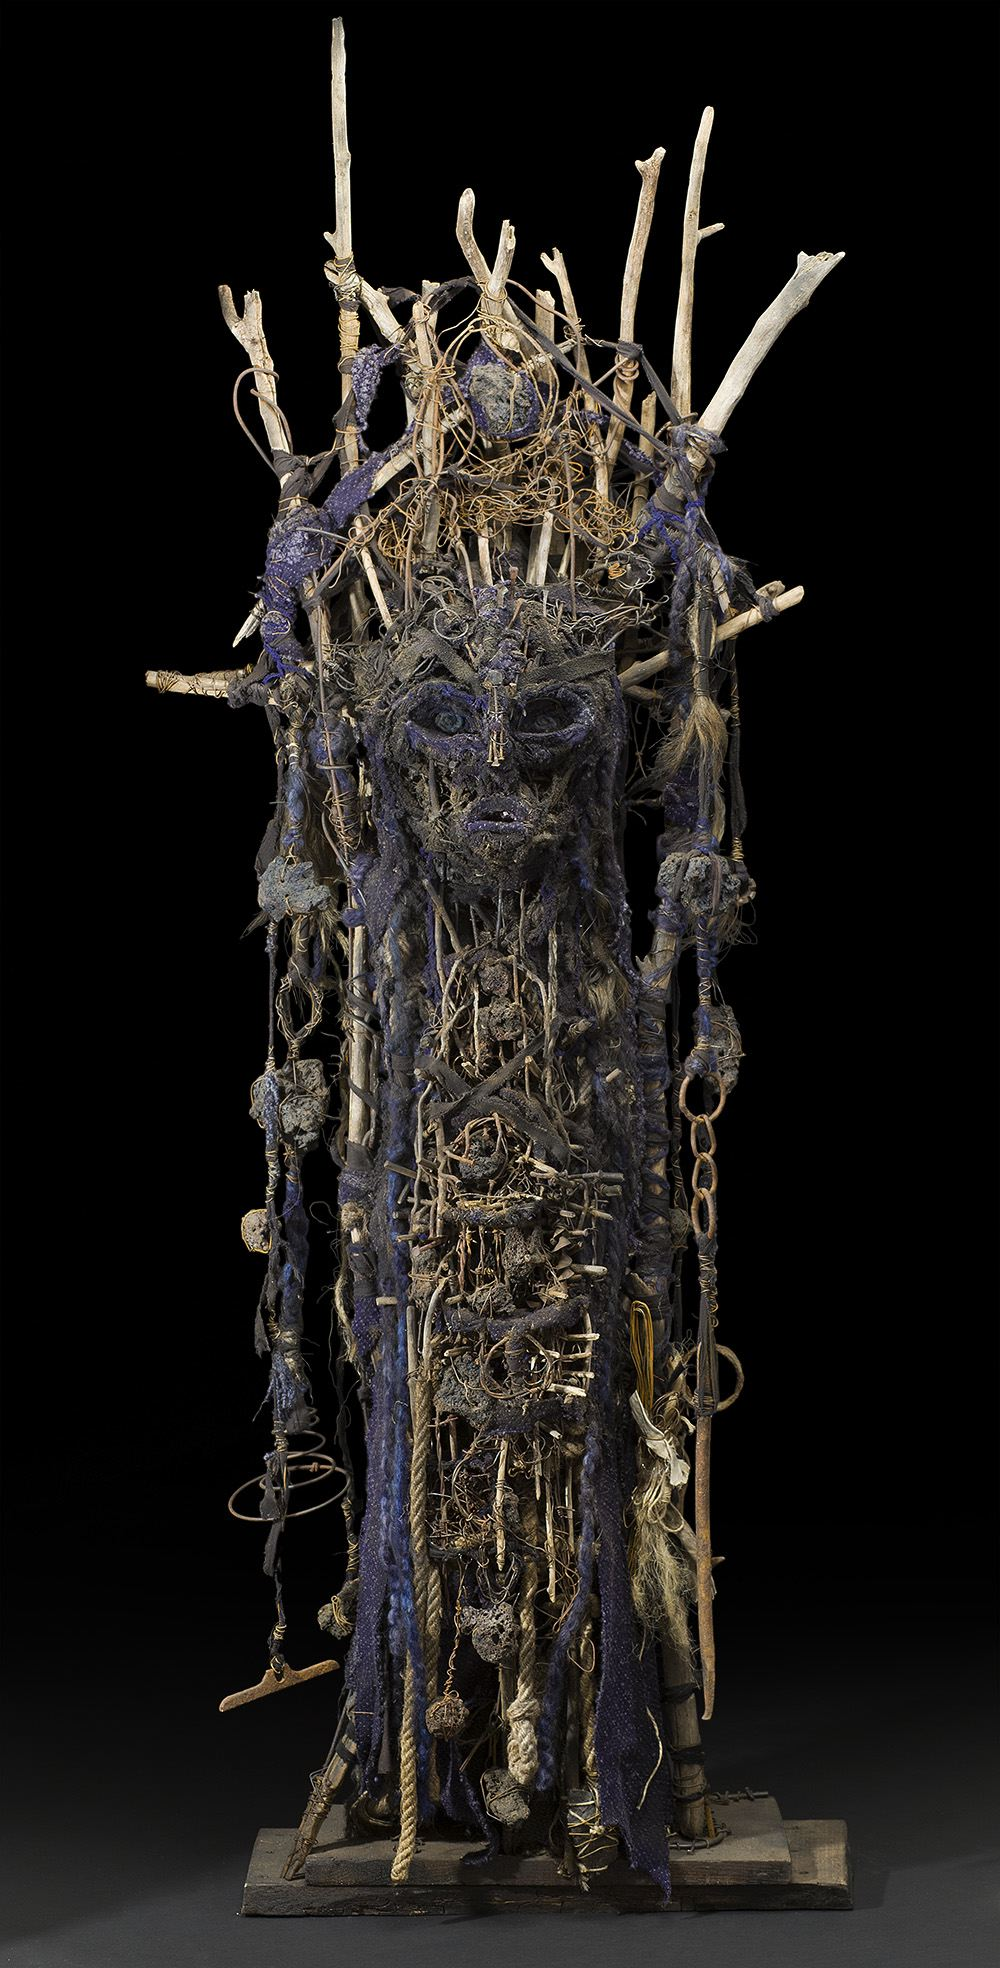 Sylvain and Ghyslaine Staelens    Totem   , 2015 Wood, metal, cloth, found objects 73 x 25 x 11 inches 185.4 x 63.5 x 27.9 cm GSS 44